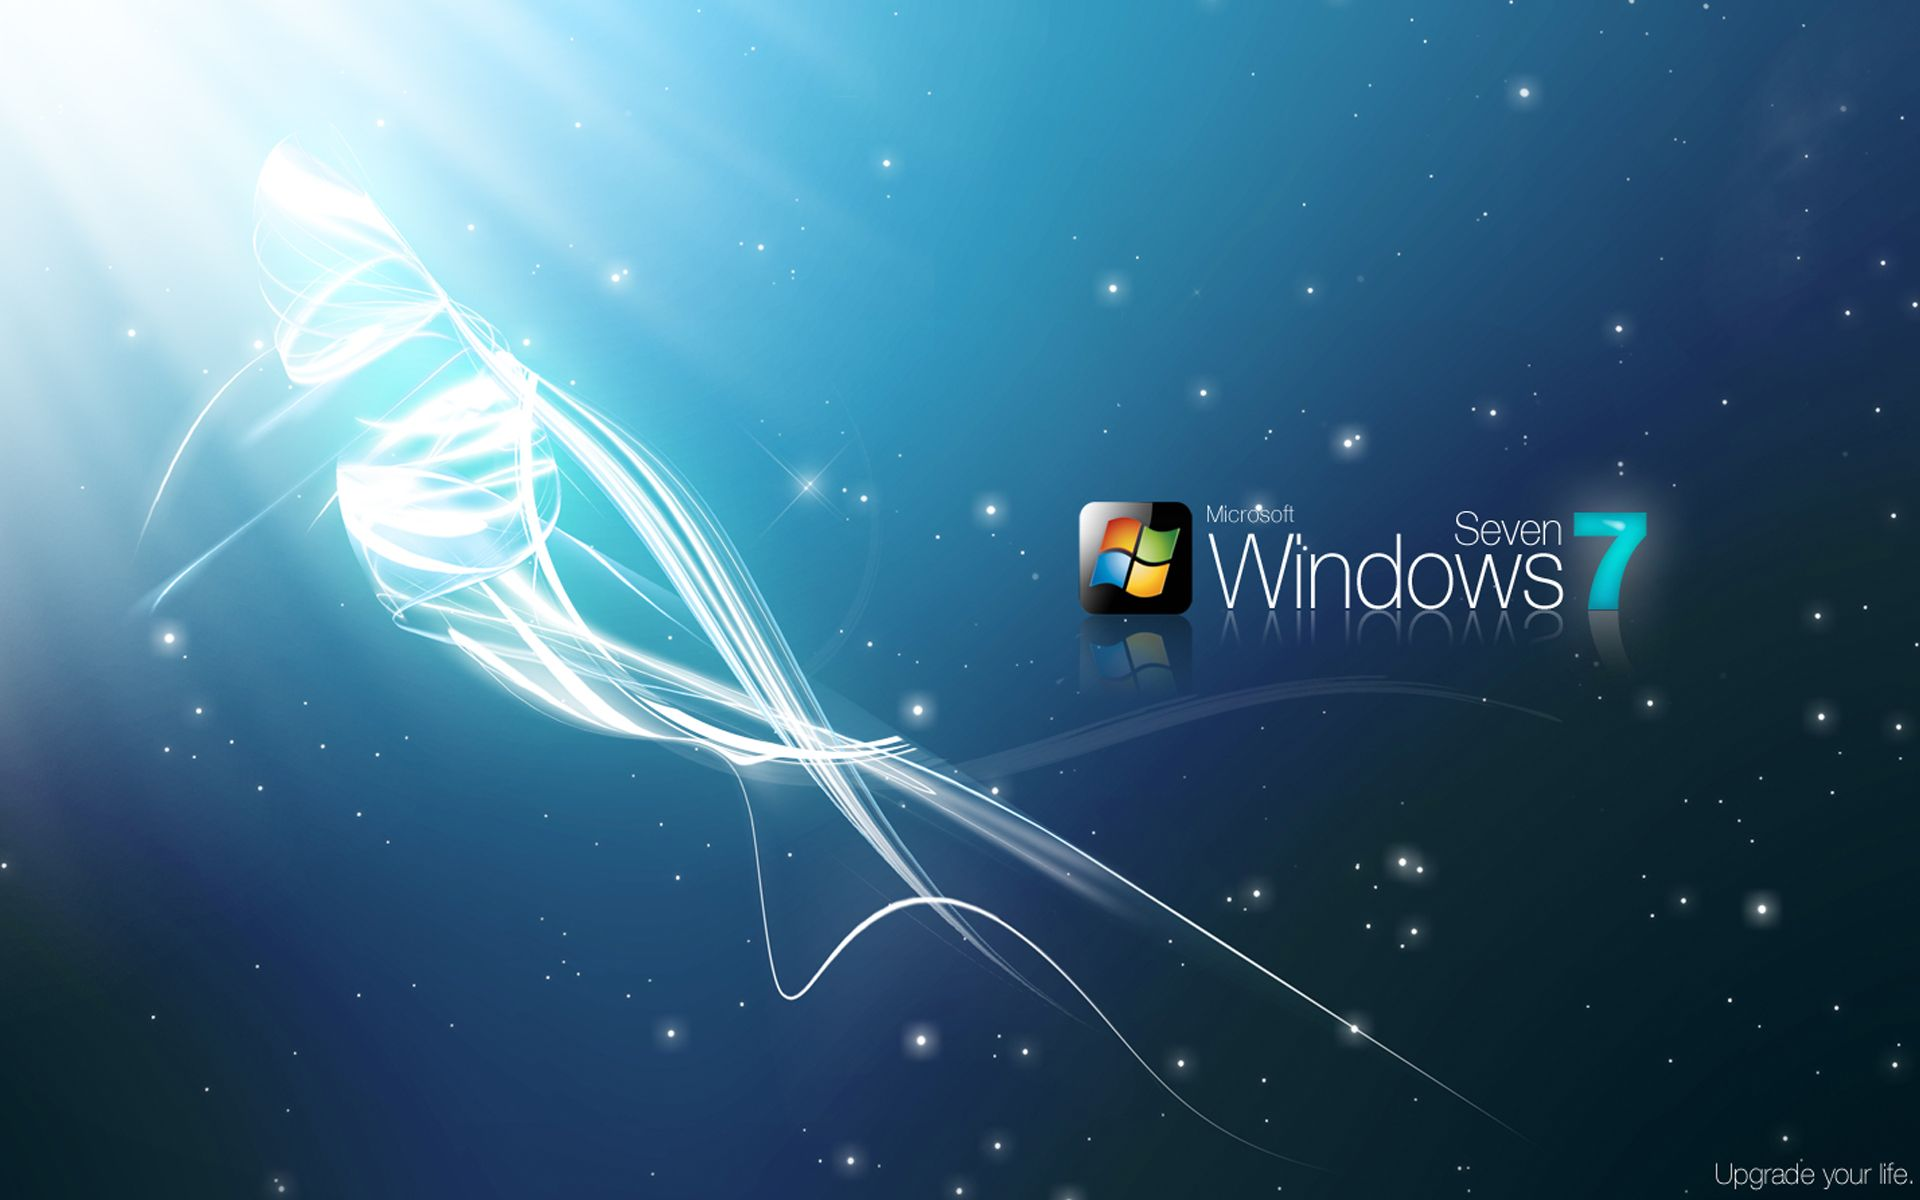 Hd wallpaper windows 7 - Best Windows Wallpapers In Hd 1920 1200 Hd Wallpapers For Windows 7 66 Wallpapers